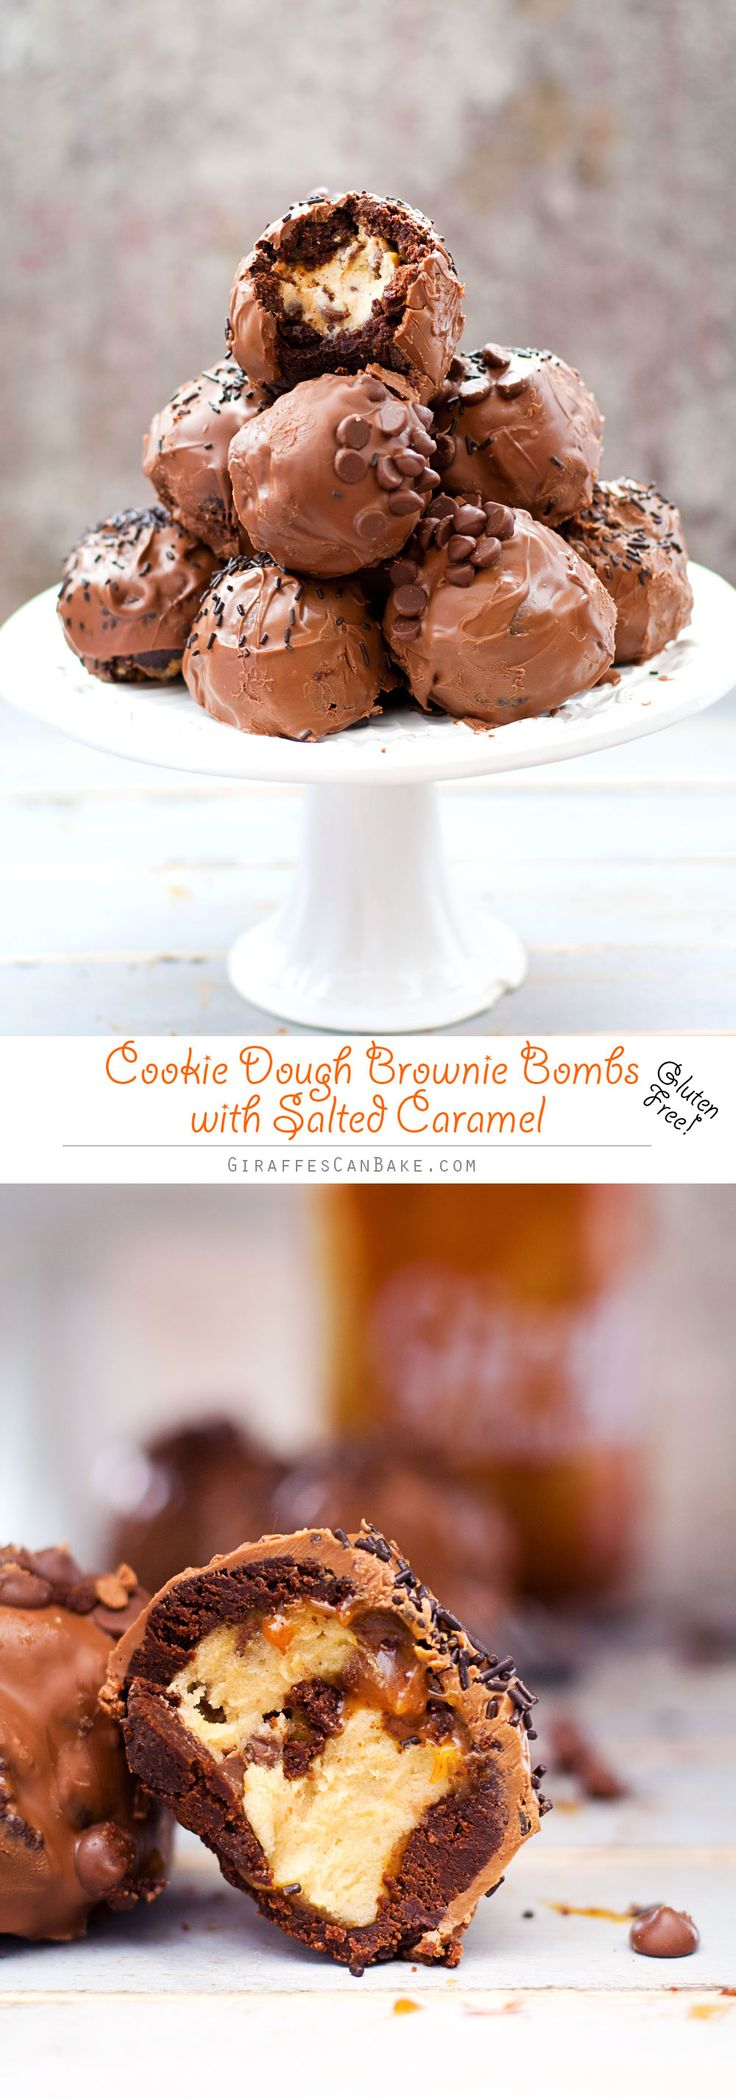 Gluten Free Cookie Dough Brownie Bombs with Salted Caramel - These Cookie Dough…